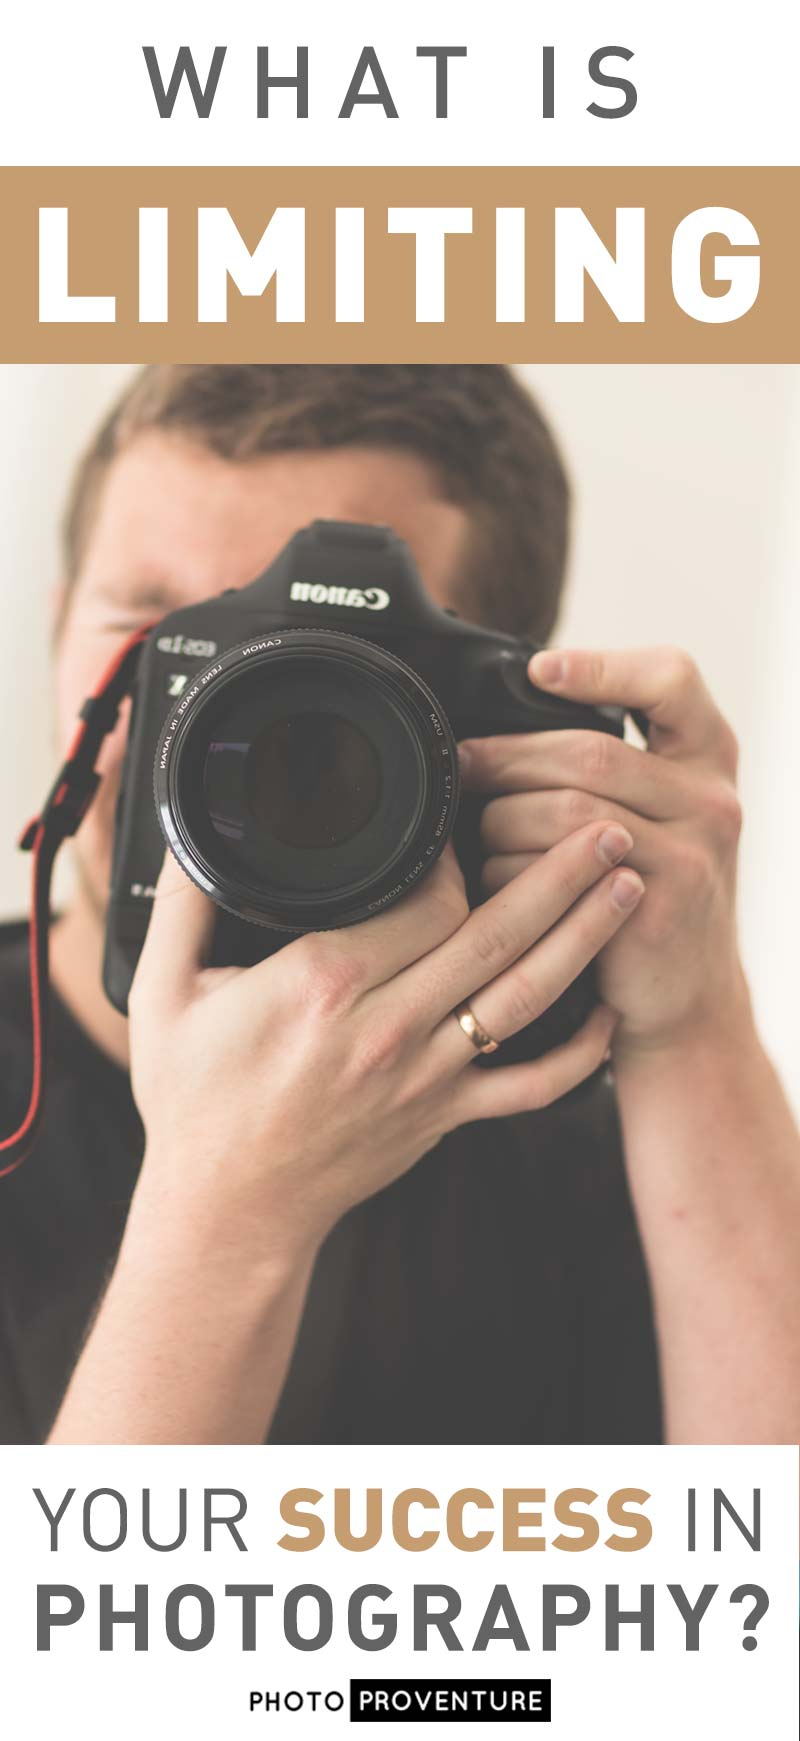 Do you feel unsuccessful in your photography? Learn how to take a different perspective here >